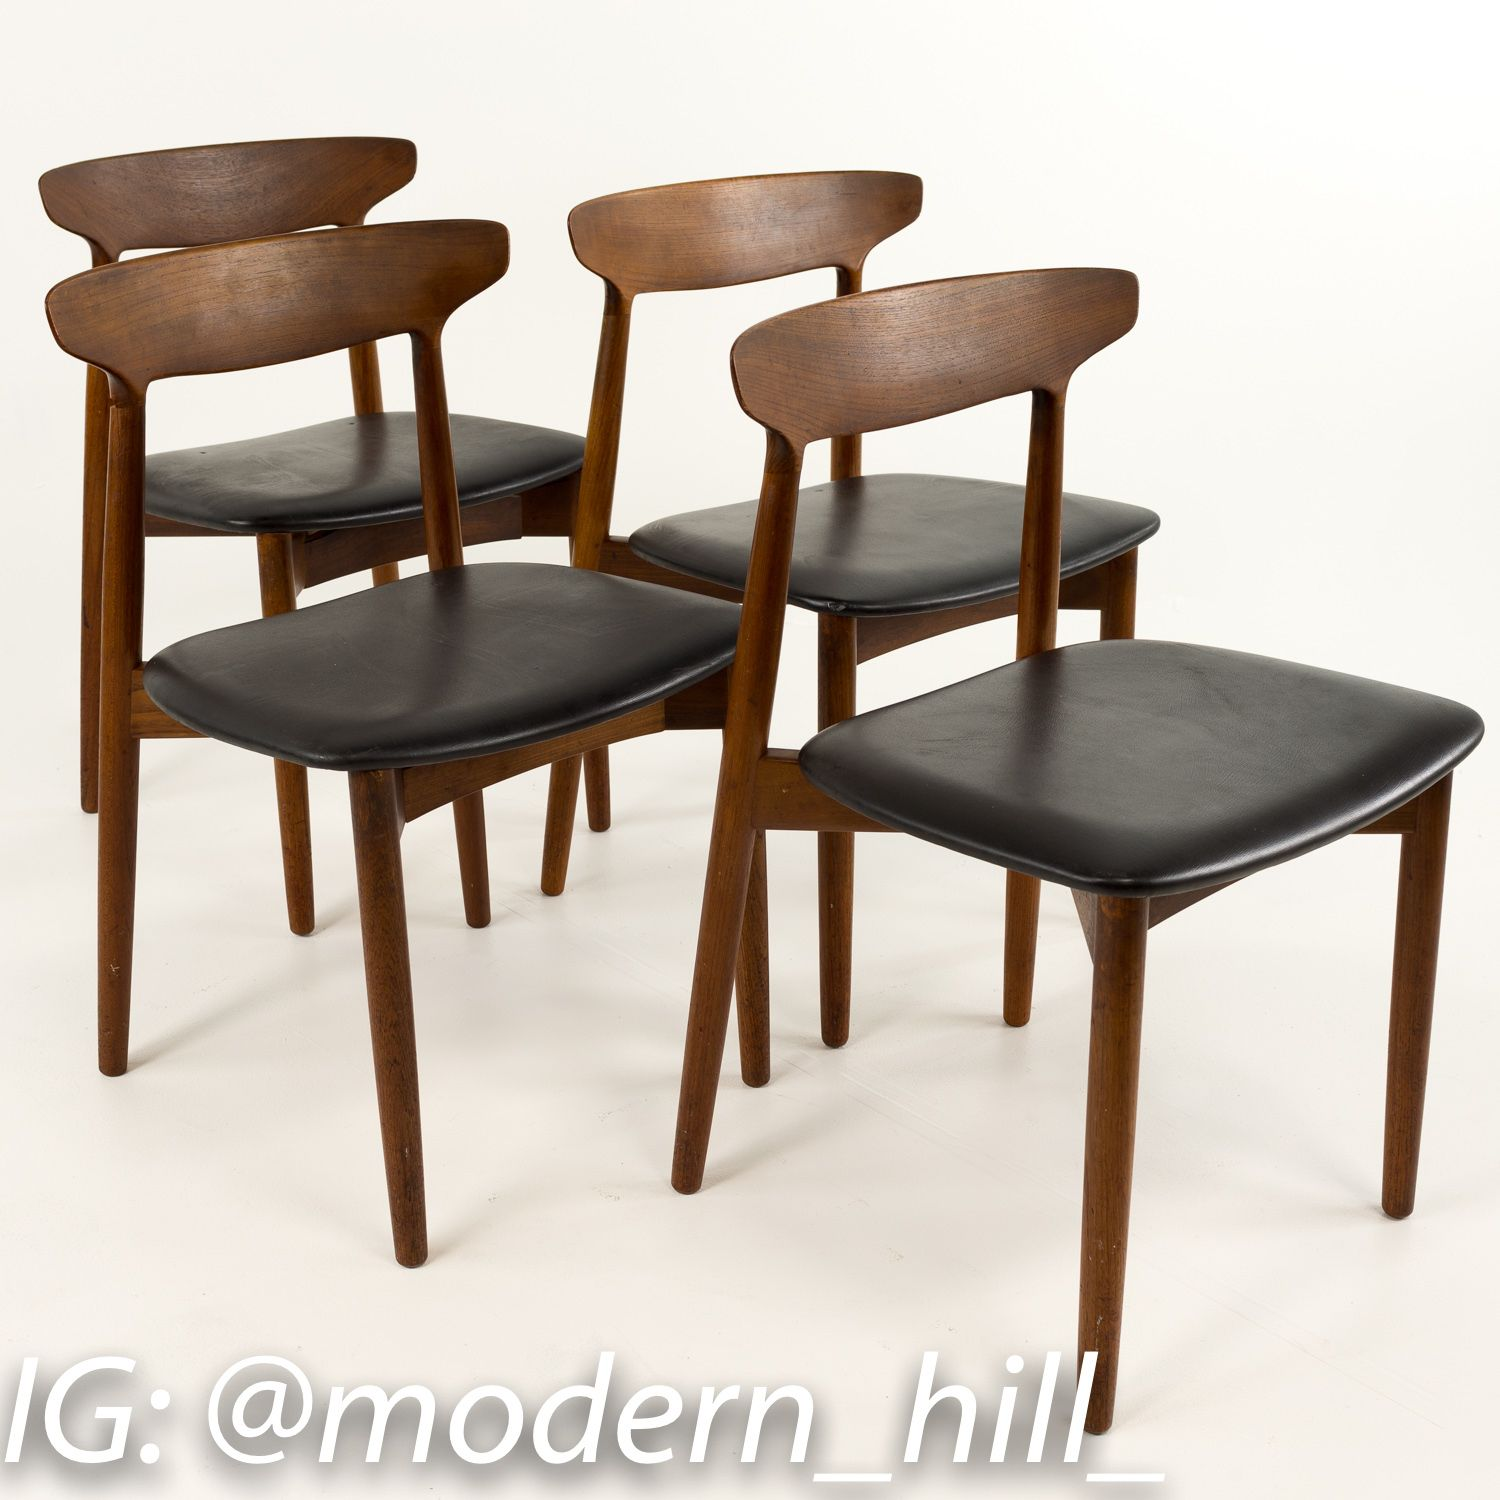 Harry Ostergaard For Randers Mobelfabrik Model 59 Dining Chairs